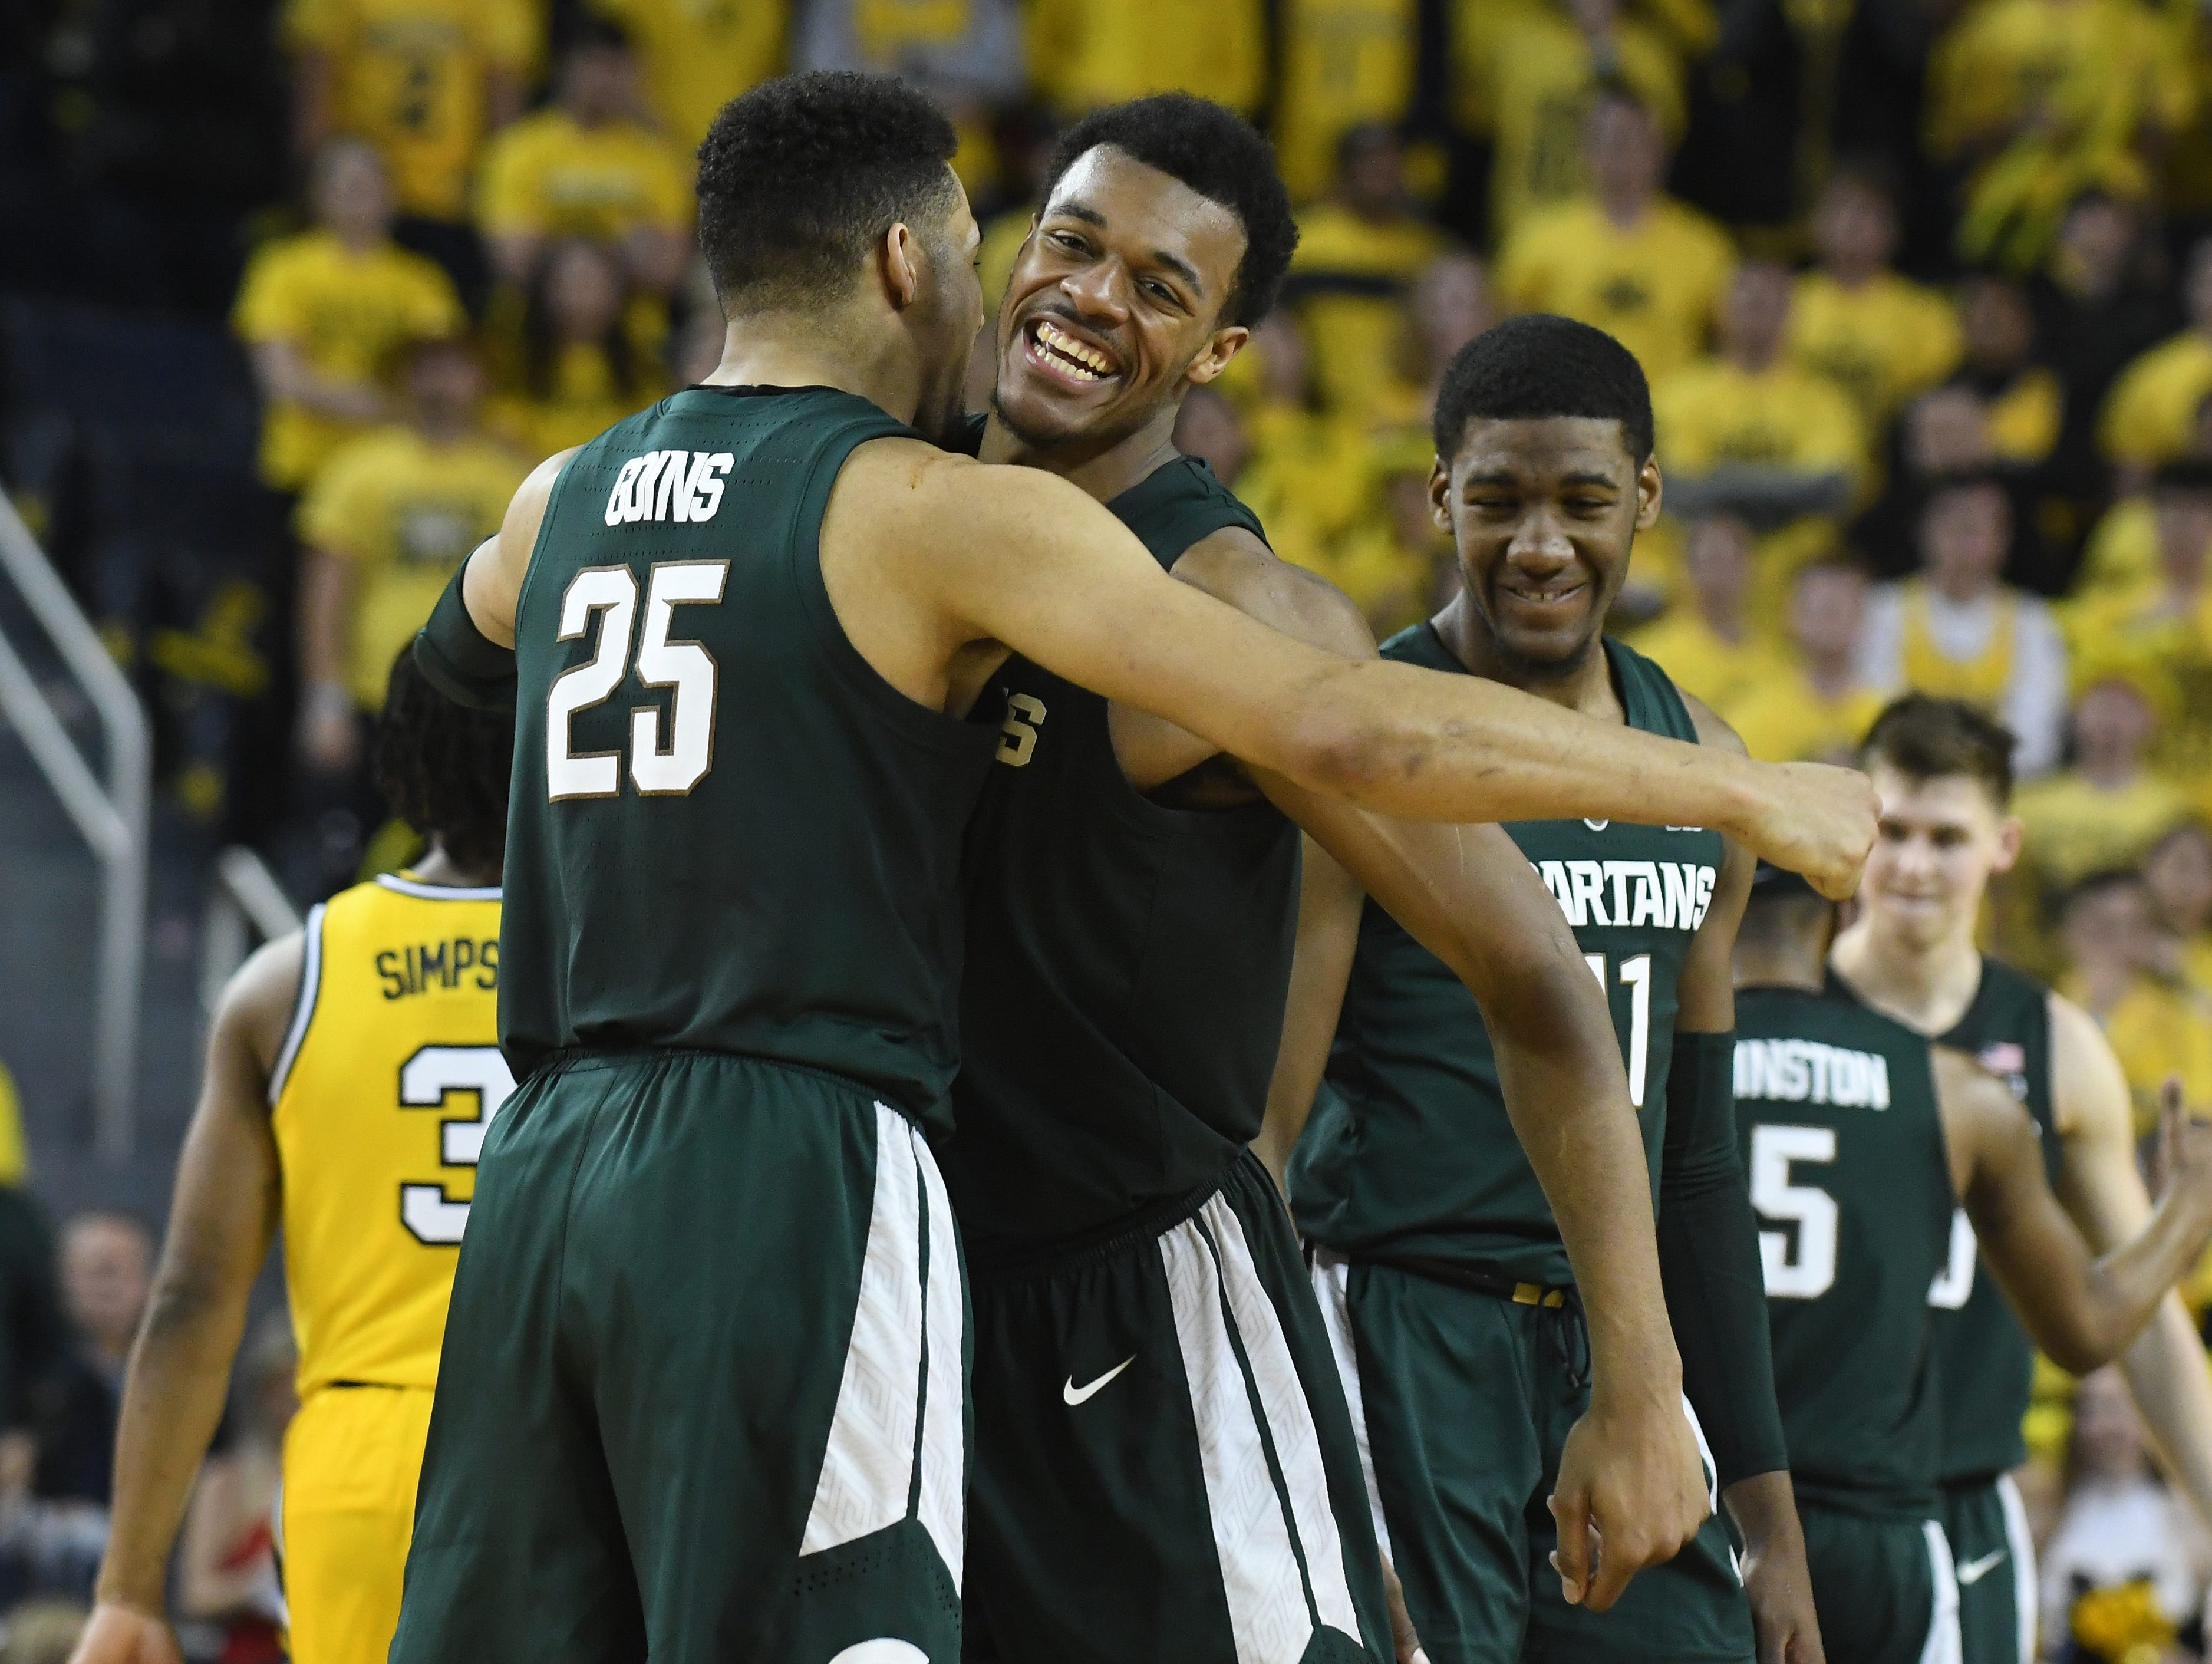 Michigan State players Kenny Goins, Xavier Tillman (facing) and Aaron Henry begin to celebrate as the clock ticks down on a 77-70 Spartans' road victory over Michigan at Crisler Center in Ann Arbor on Sunday February 24, 2019.